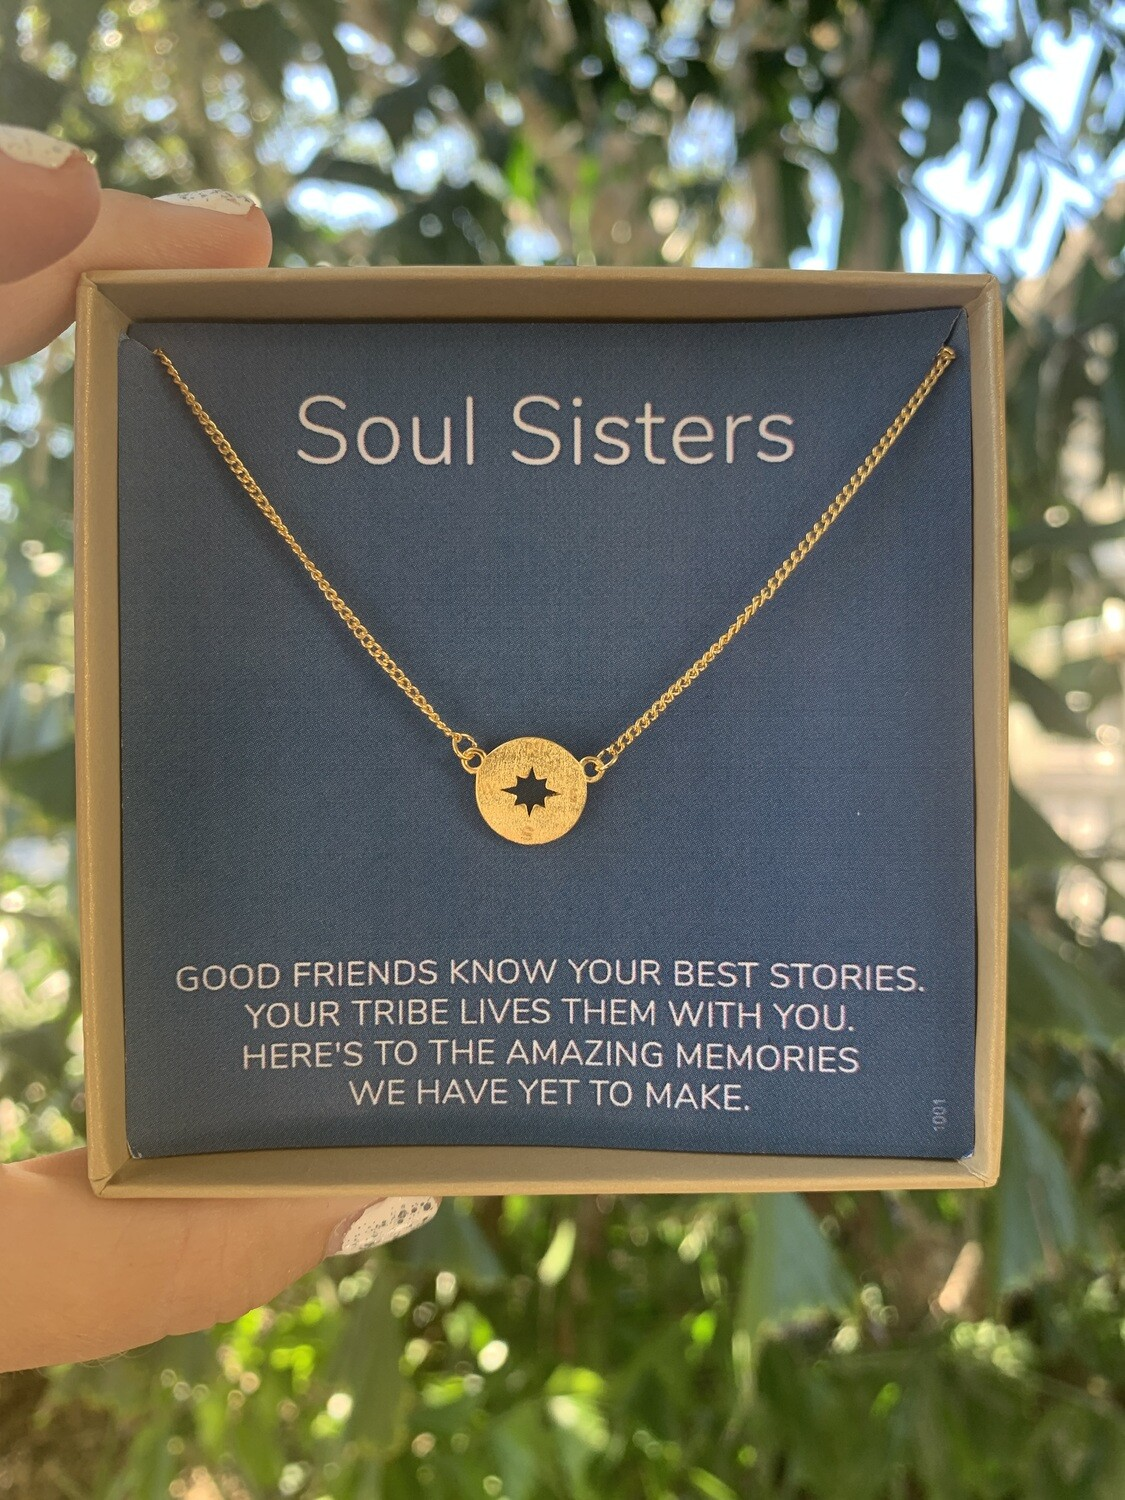 Soul sisters compass necklace